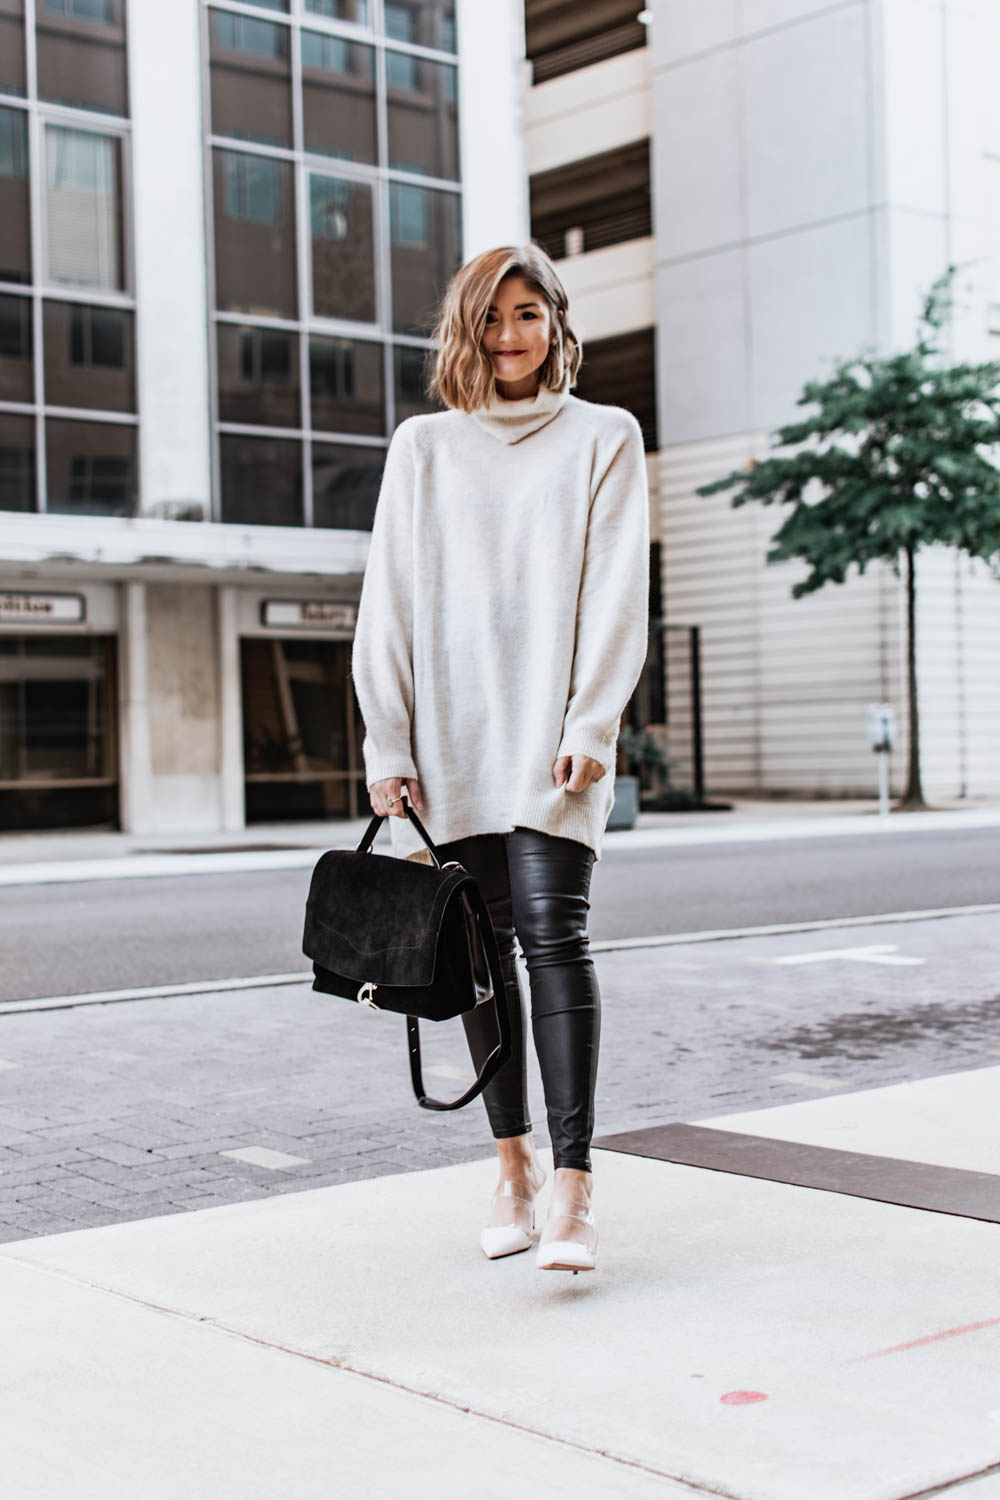 3 ways to wear a sweater dress this winter. Paired with faux leather leggings.